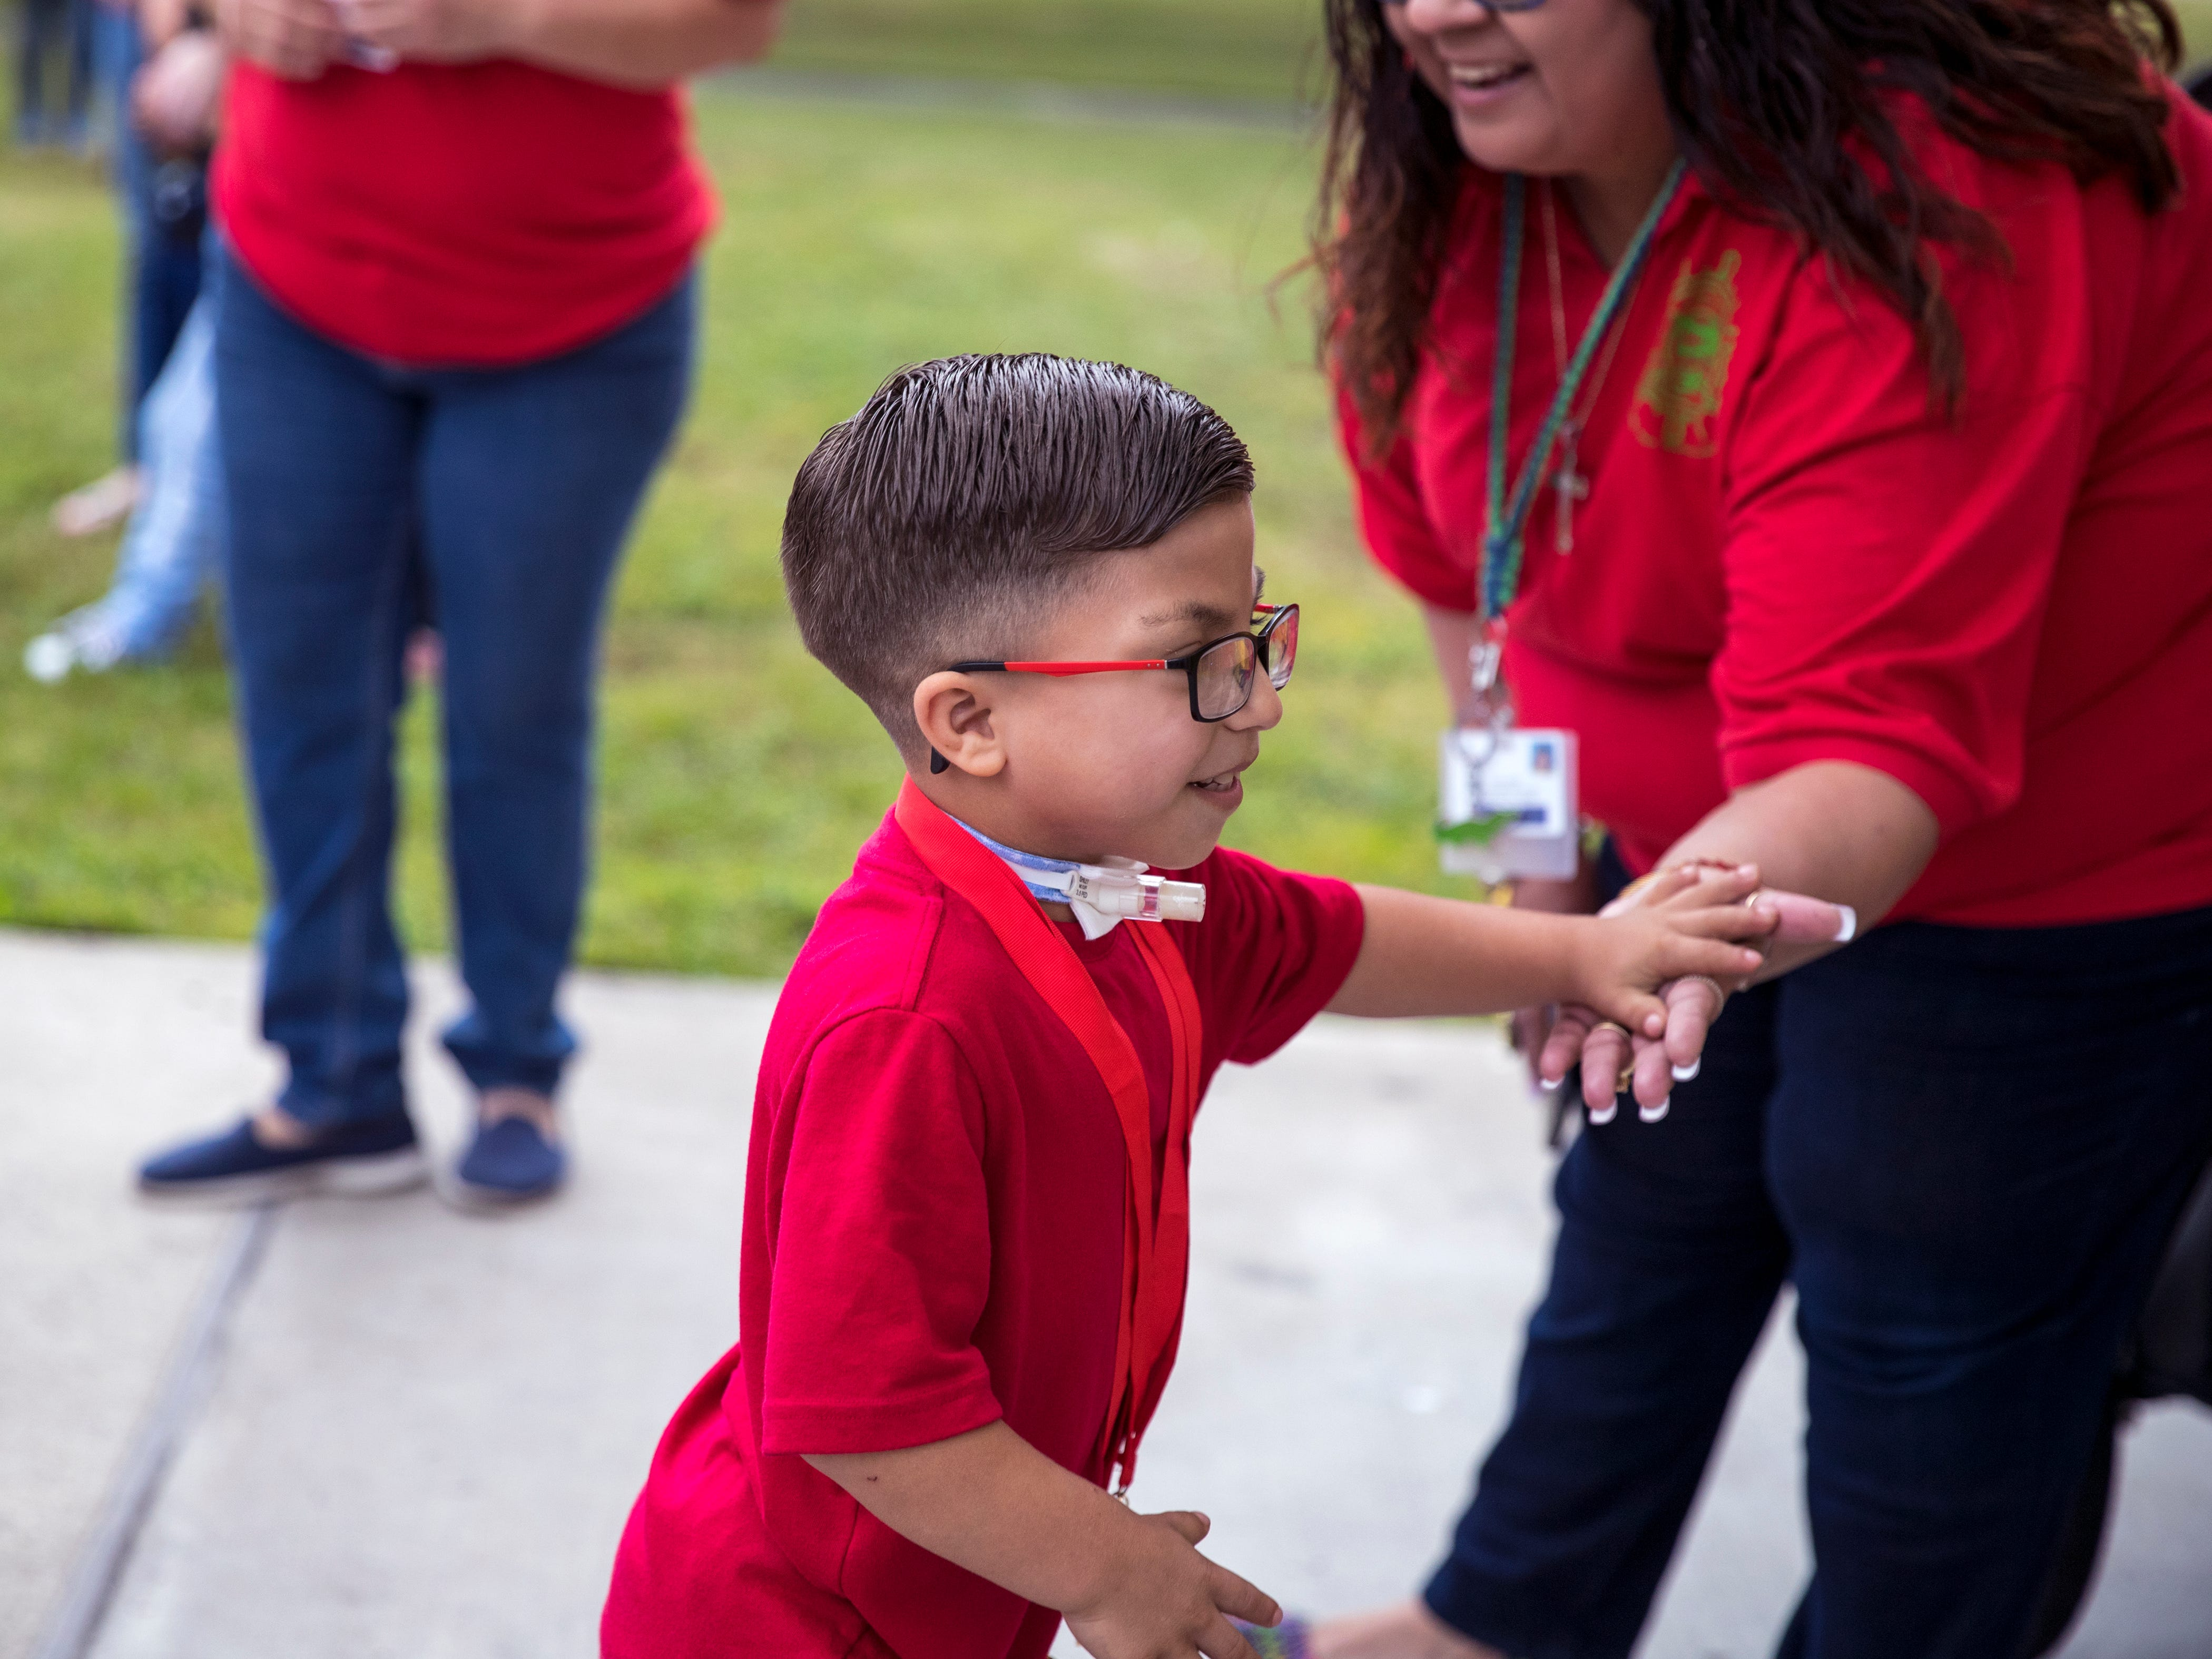 """Ethann Valdez, 9, gets a high-five as he leads the parade back into the school at Garcia Elementary School on Wednesday, April 17, 2019. Diagnosed at the age of five with geleophysic dysplasia (known as dwarfism), Ethann will be out of school for the rest of the year as he undergoes open heart surgery for a valve replacement to the main aorta of his heart. The school wanted to send him off with a """"Best Wishes Parade"""" before he left."""